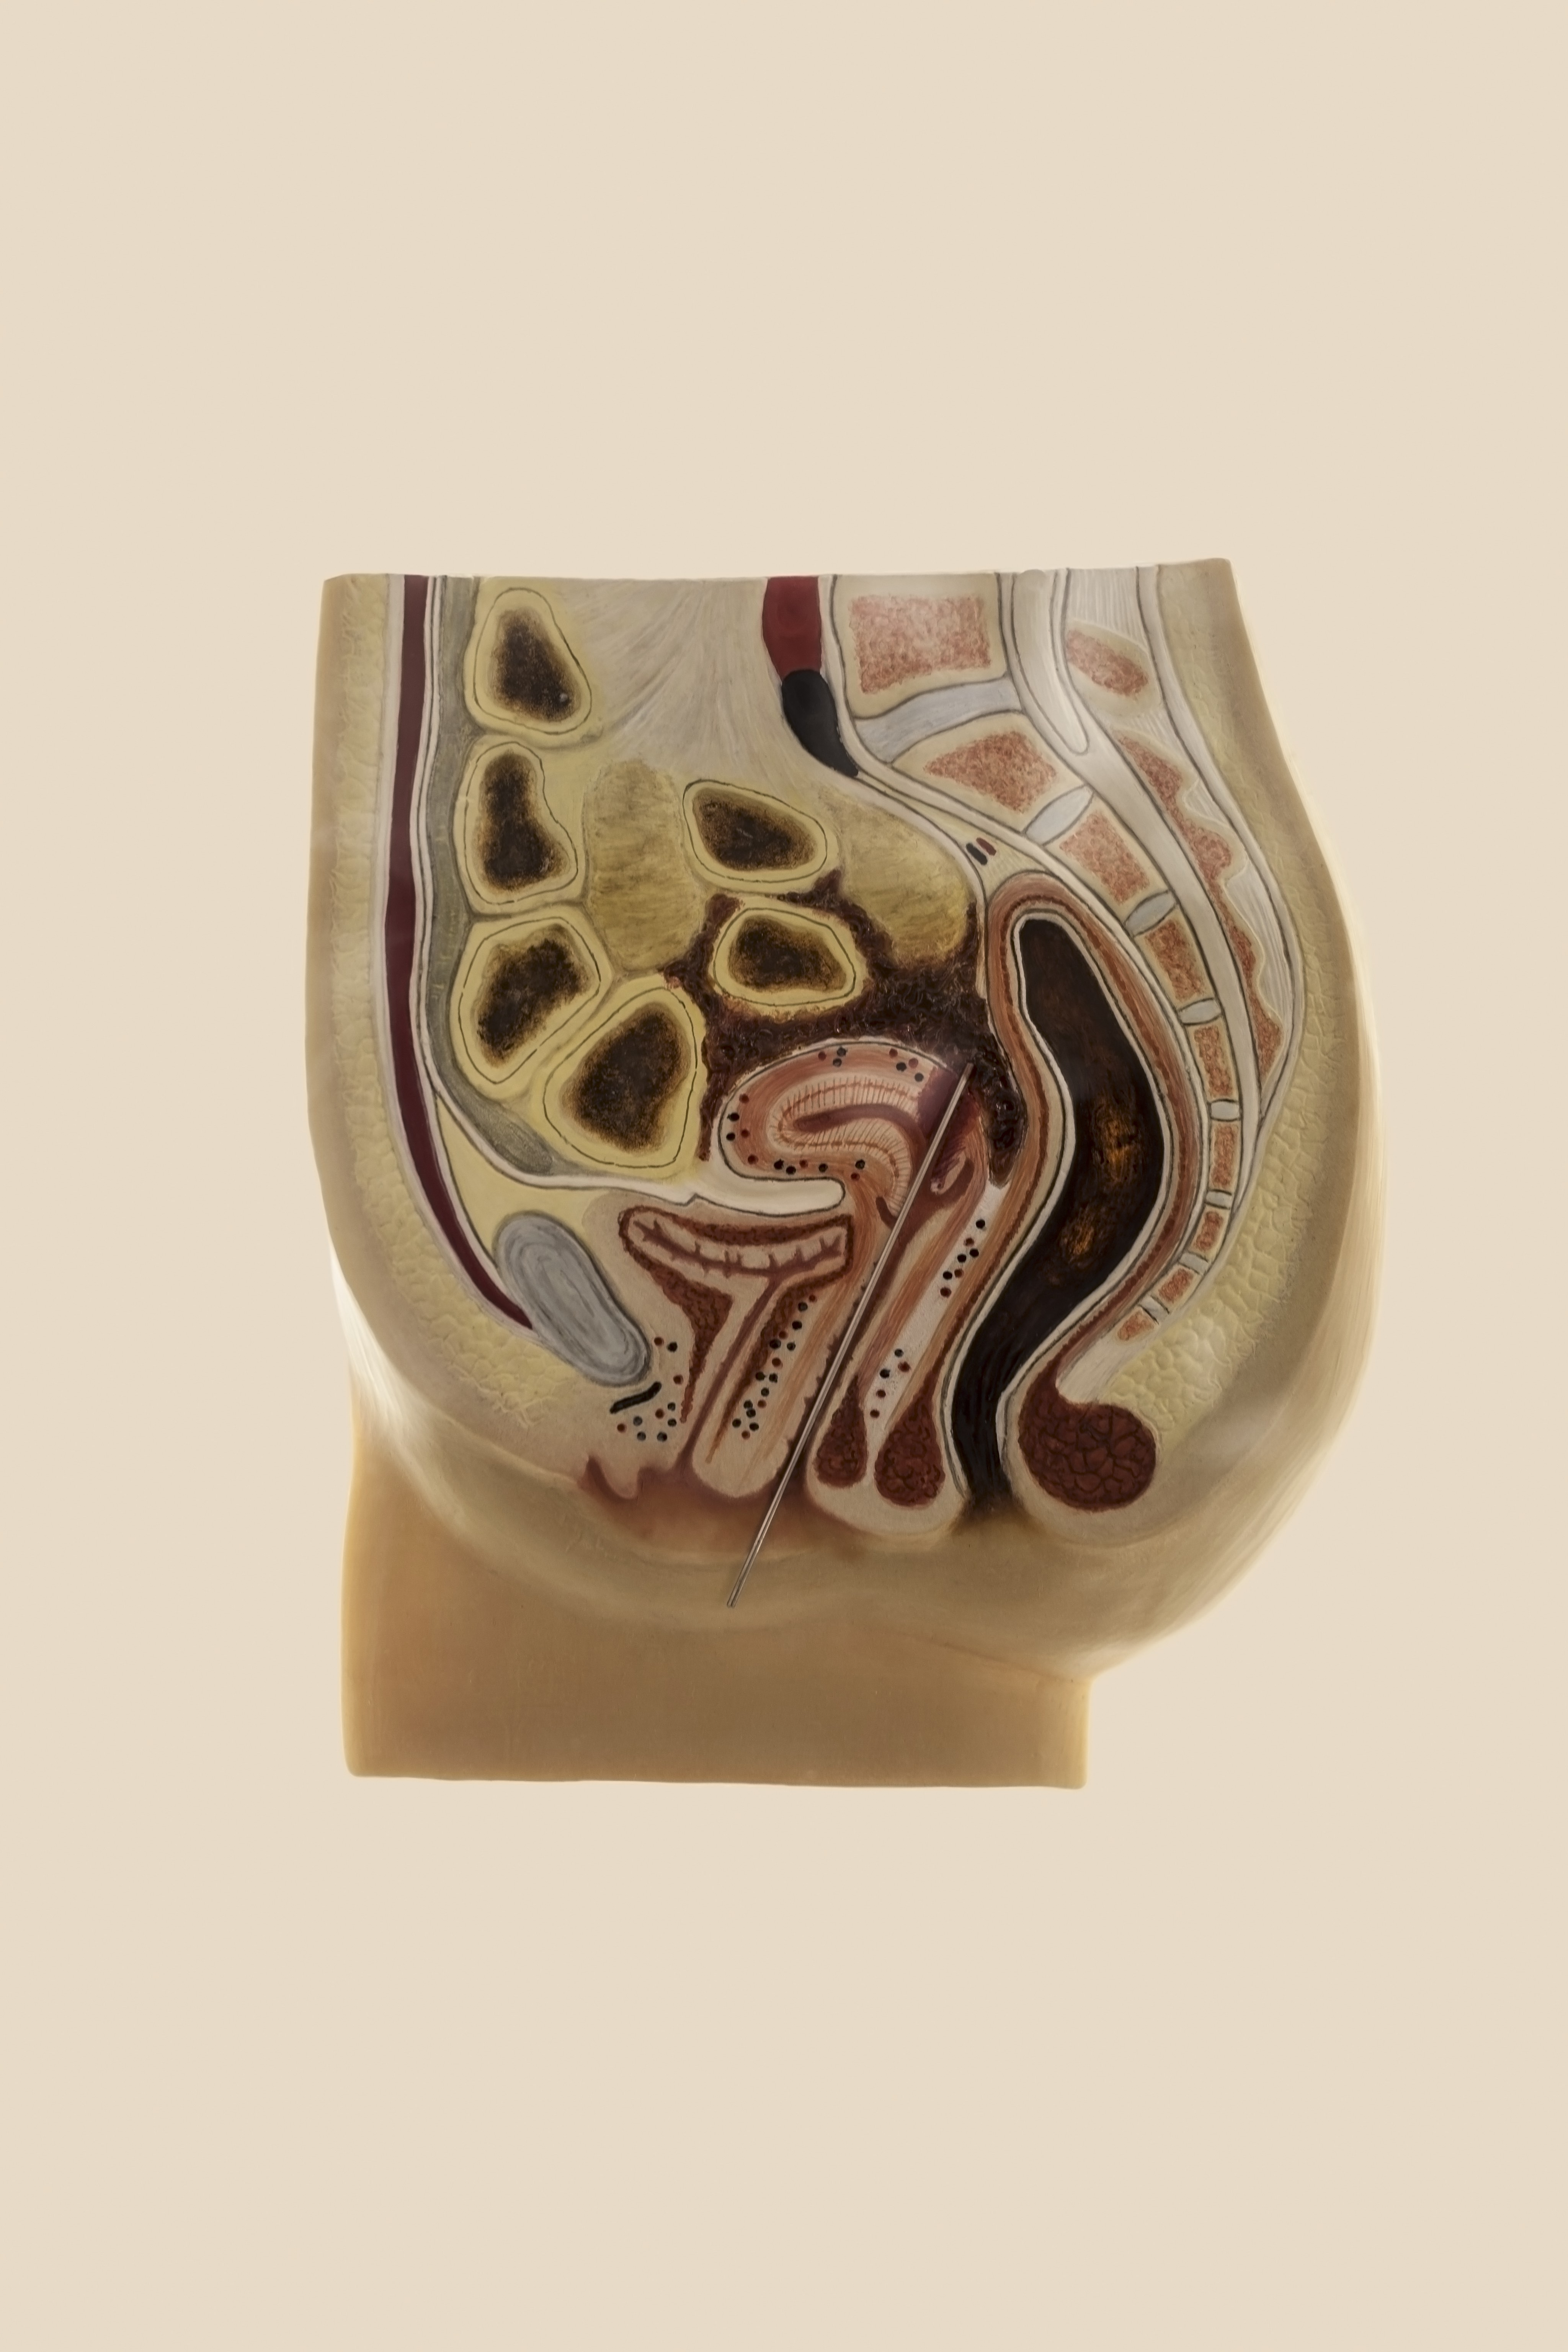 3D cross-section illustrating a knitting-needle abortion.